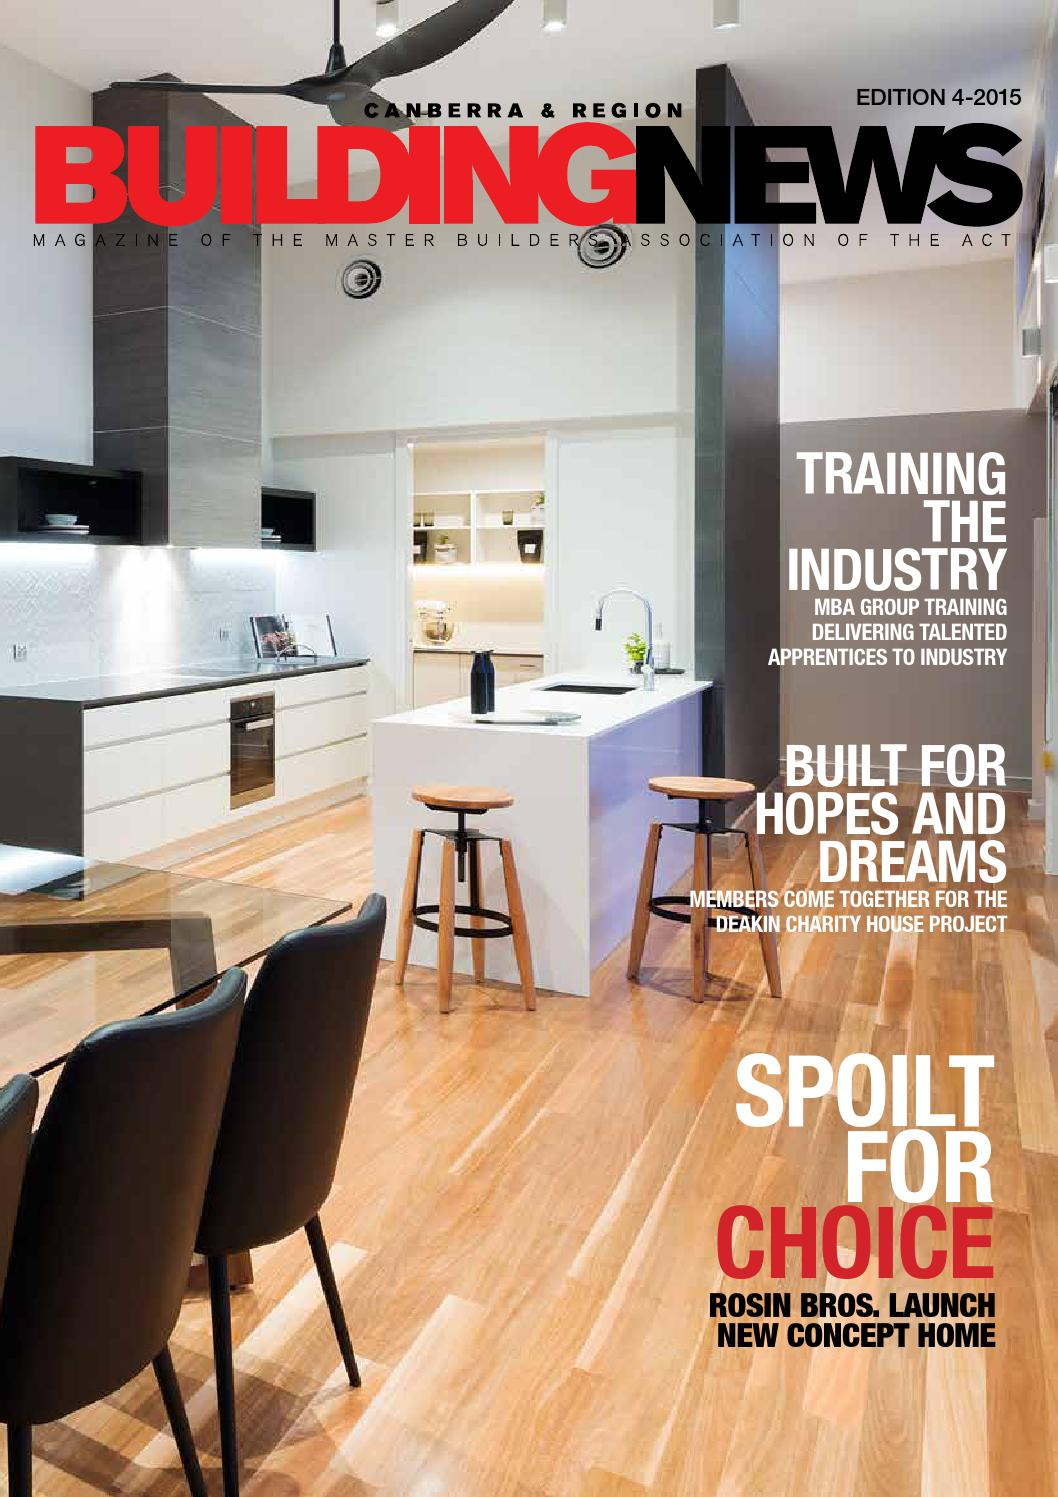 Canberra building news 4 2015 by master builders association of canberra building news 4 2015 by master builders association of the act issuu dailygadgetfo Images